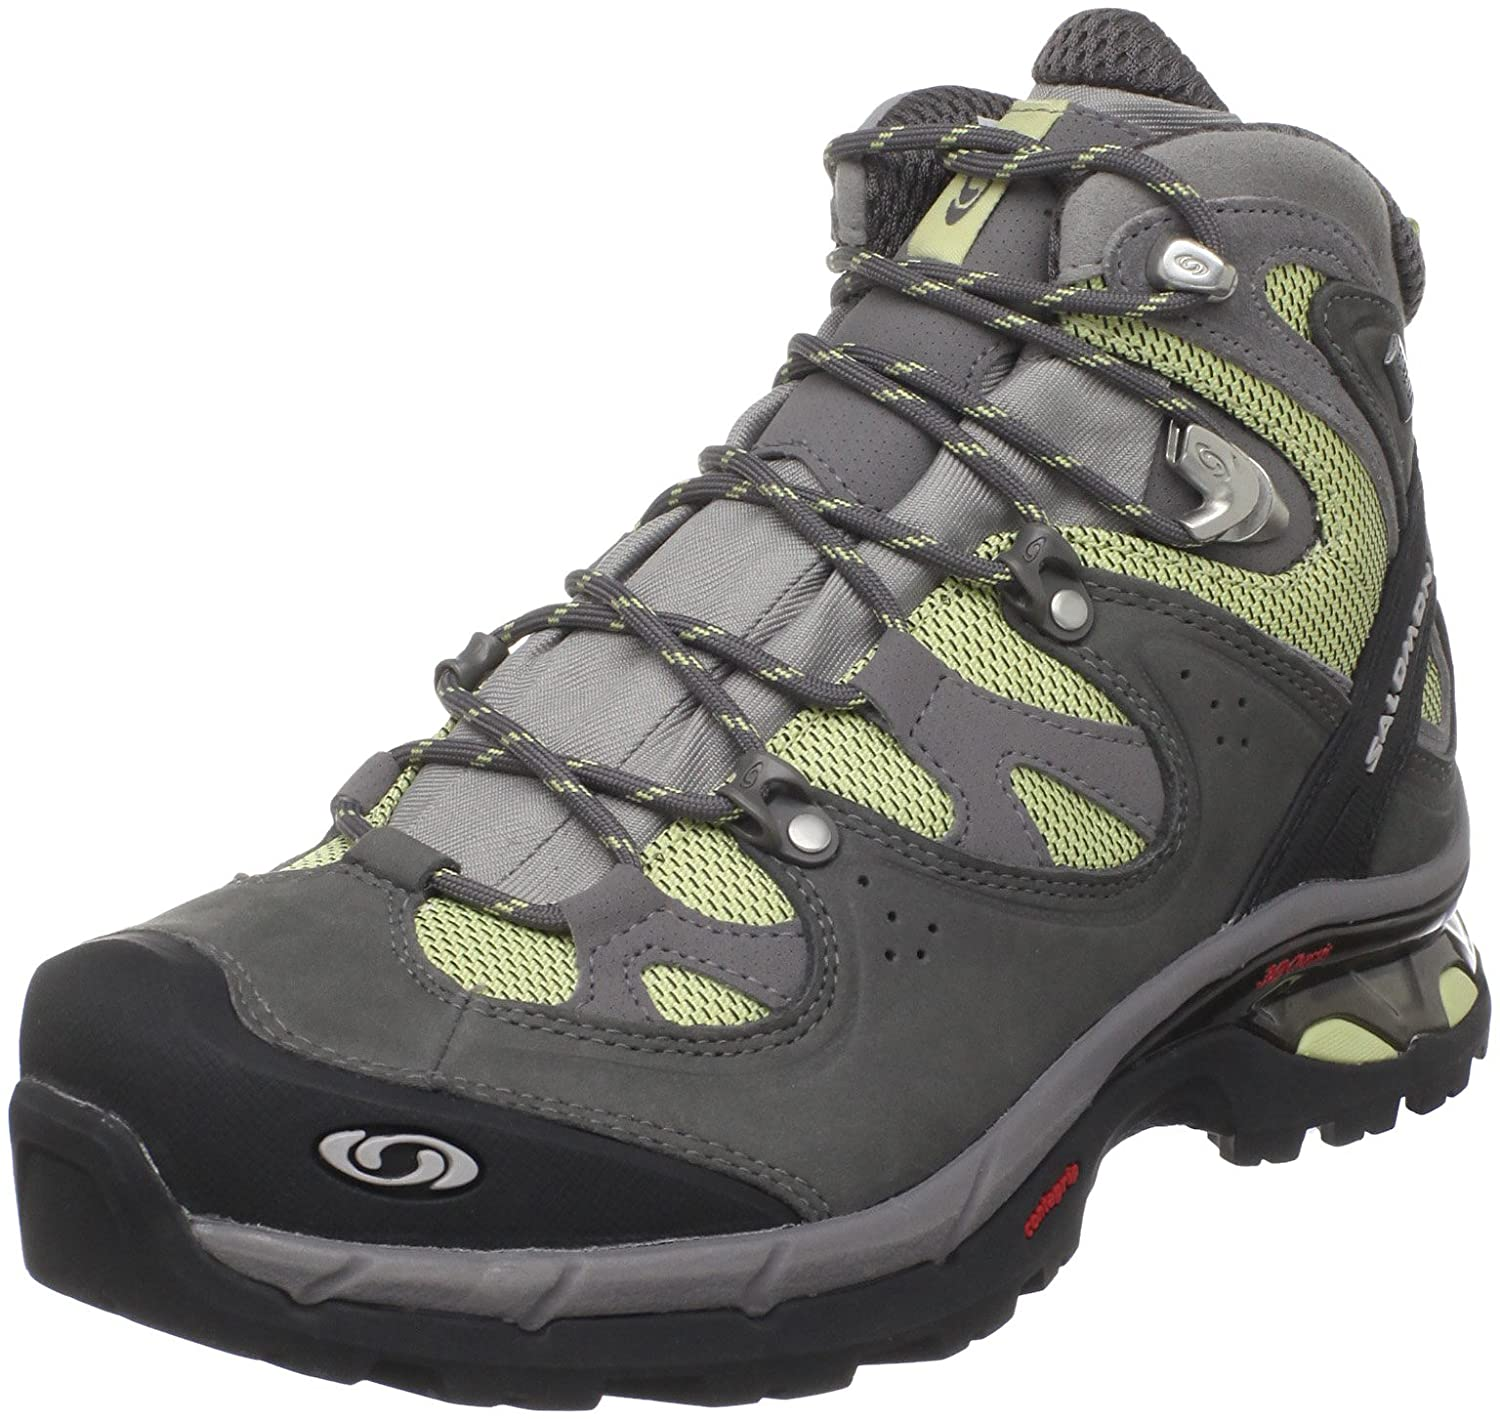 0a995ed74baa Salomon Women s Comet 3D Lady GTX Hiking Boot